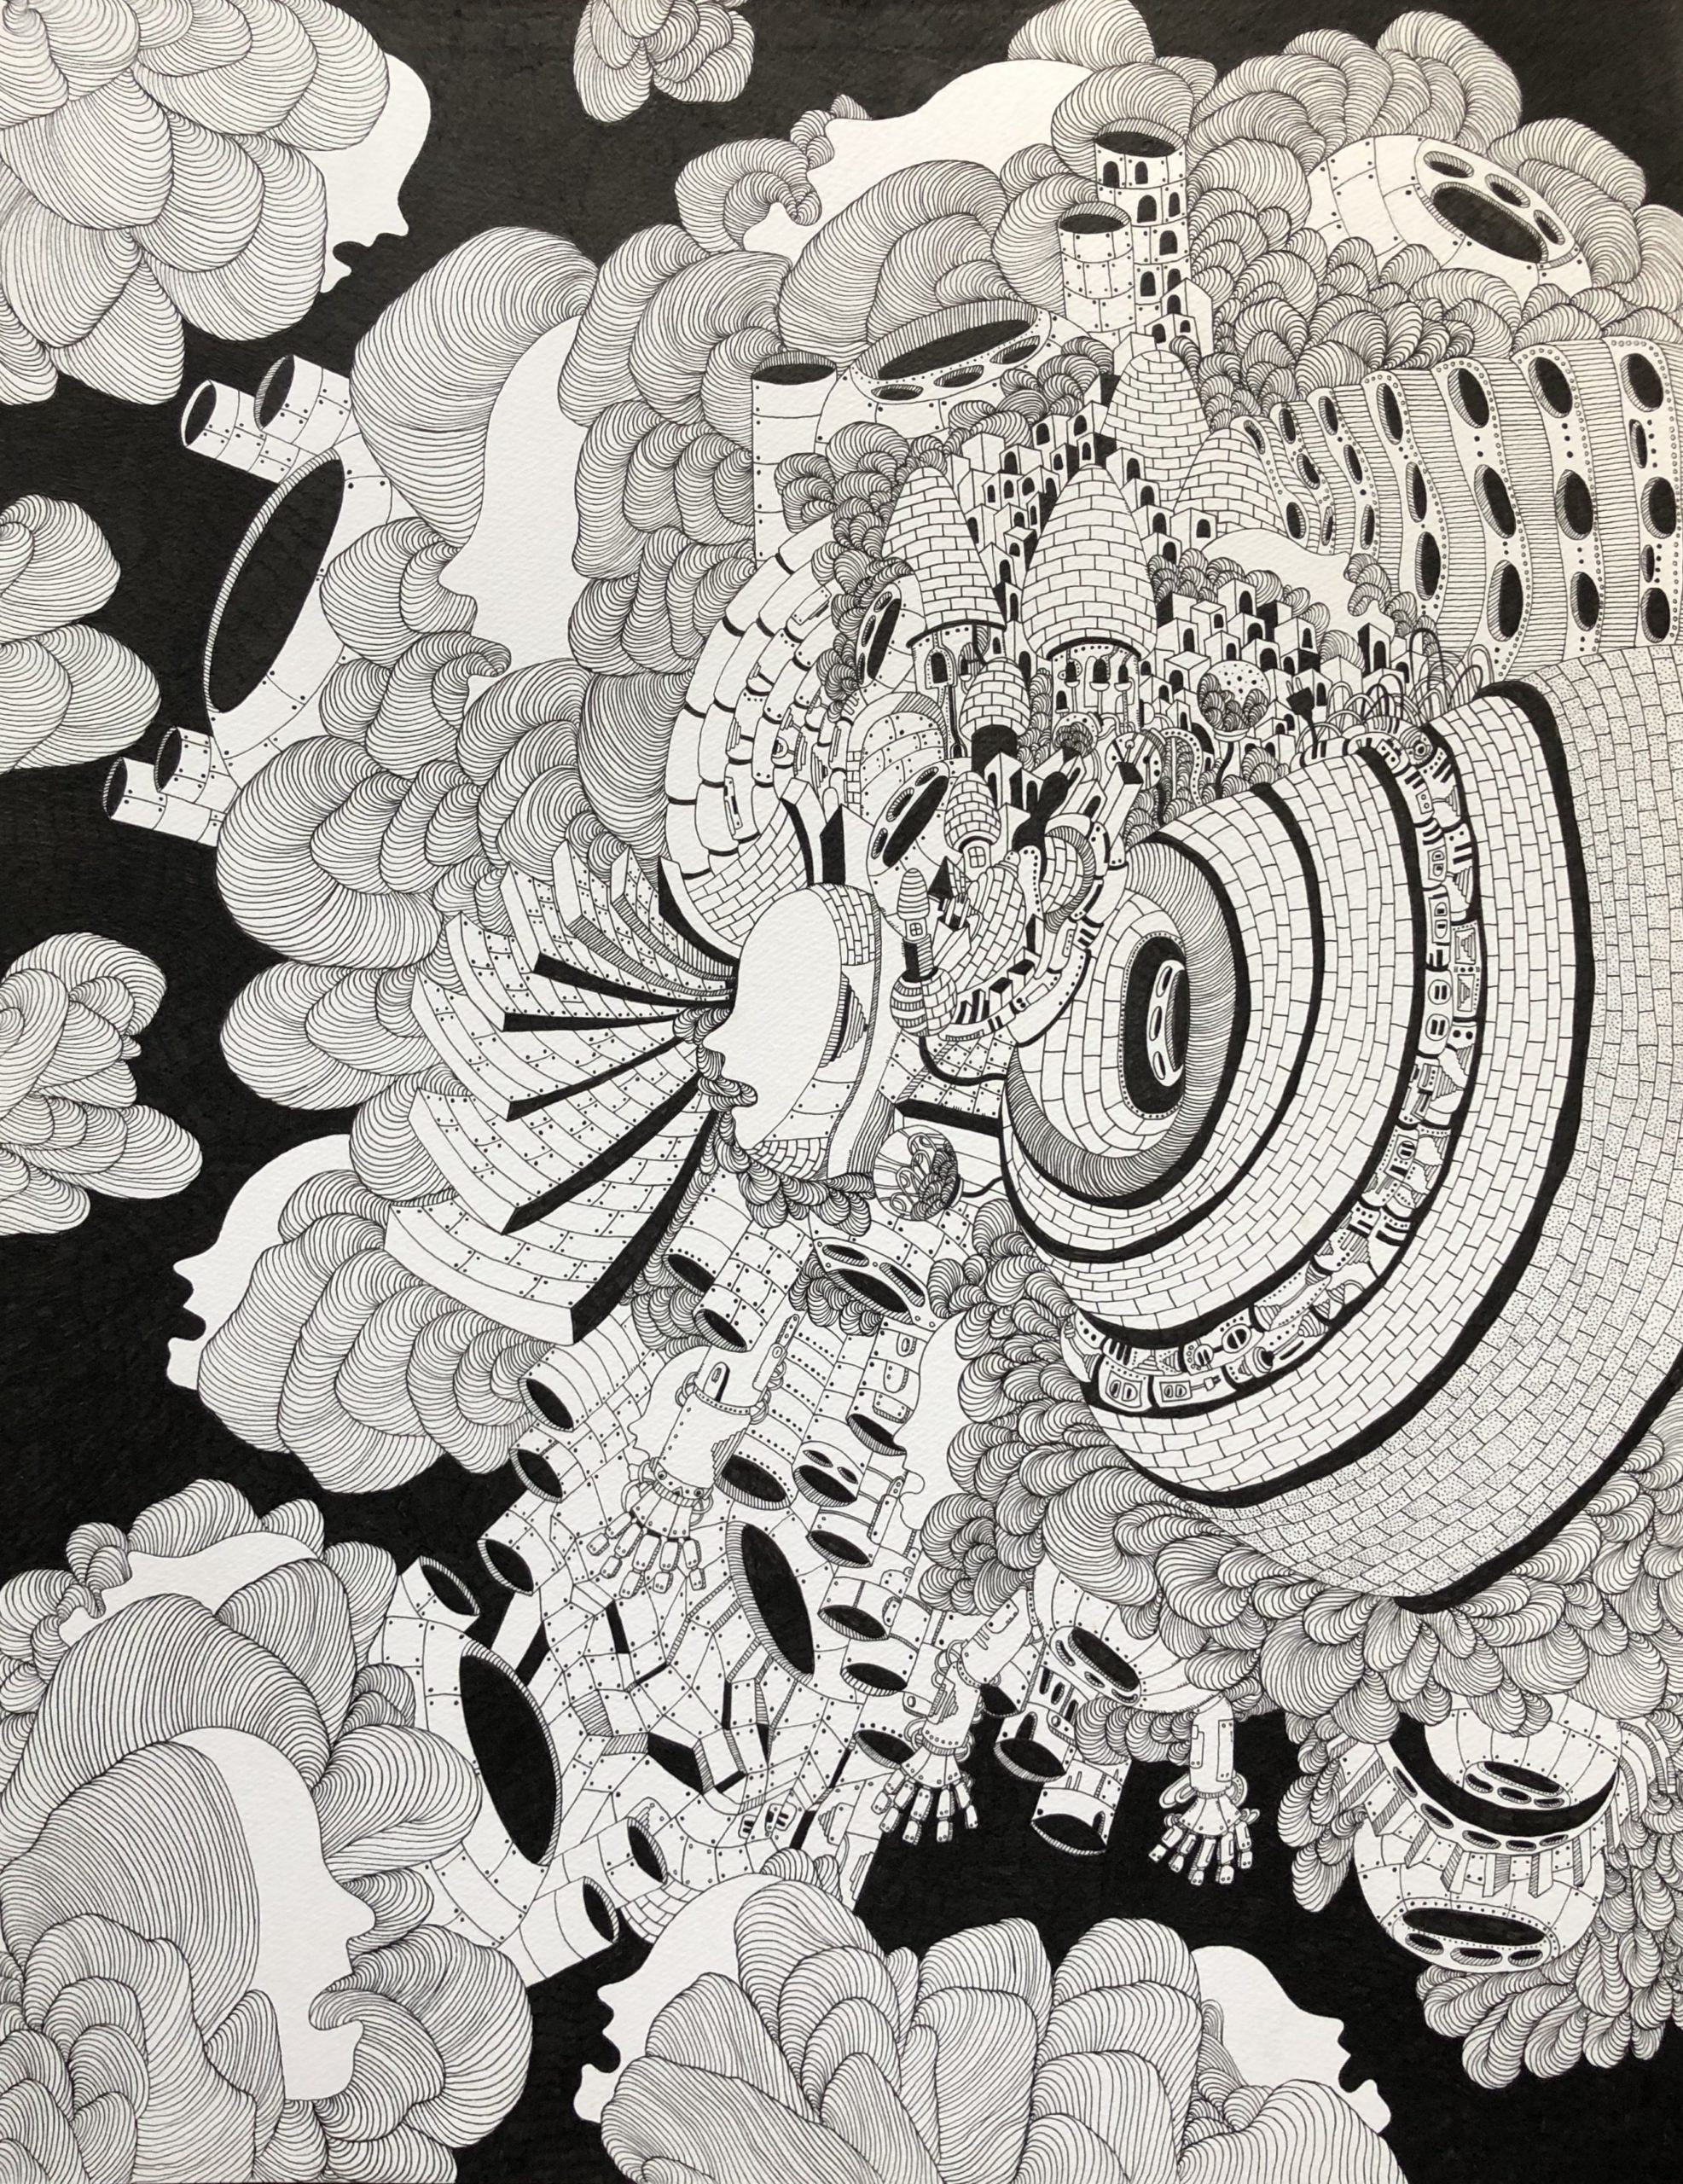 Teruyukj Kurihara_drawing_Destruction and creation